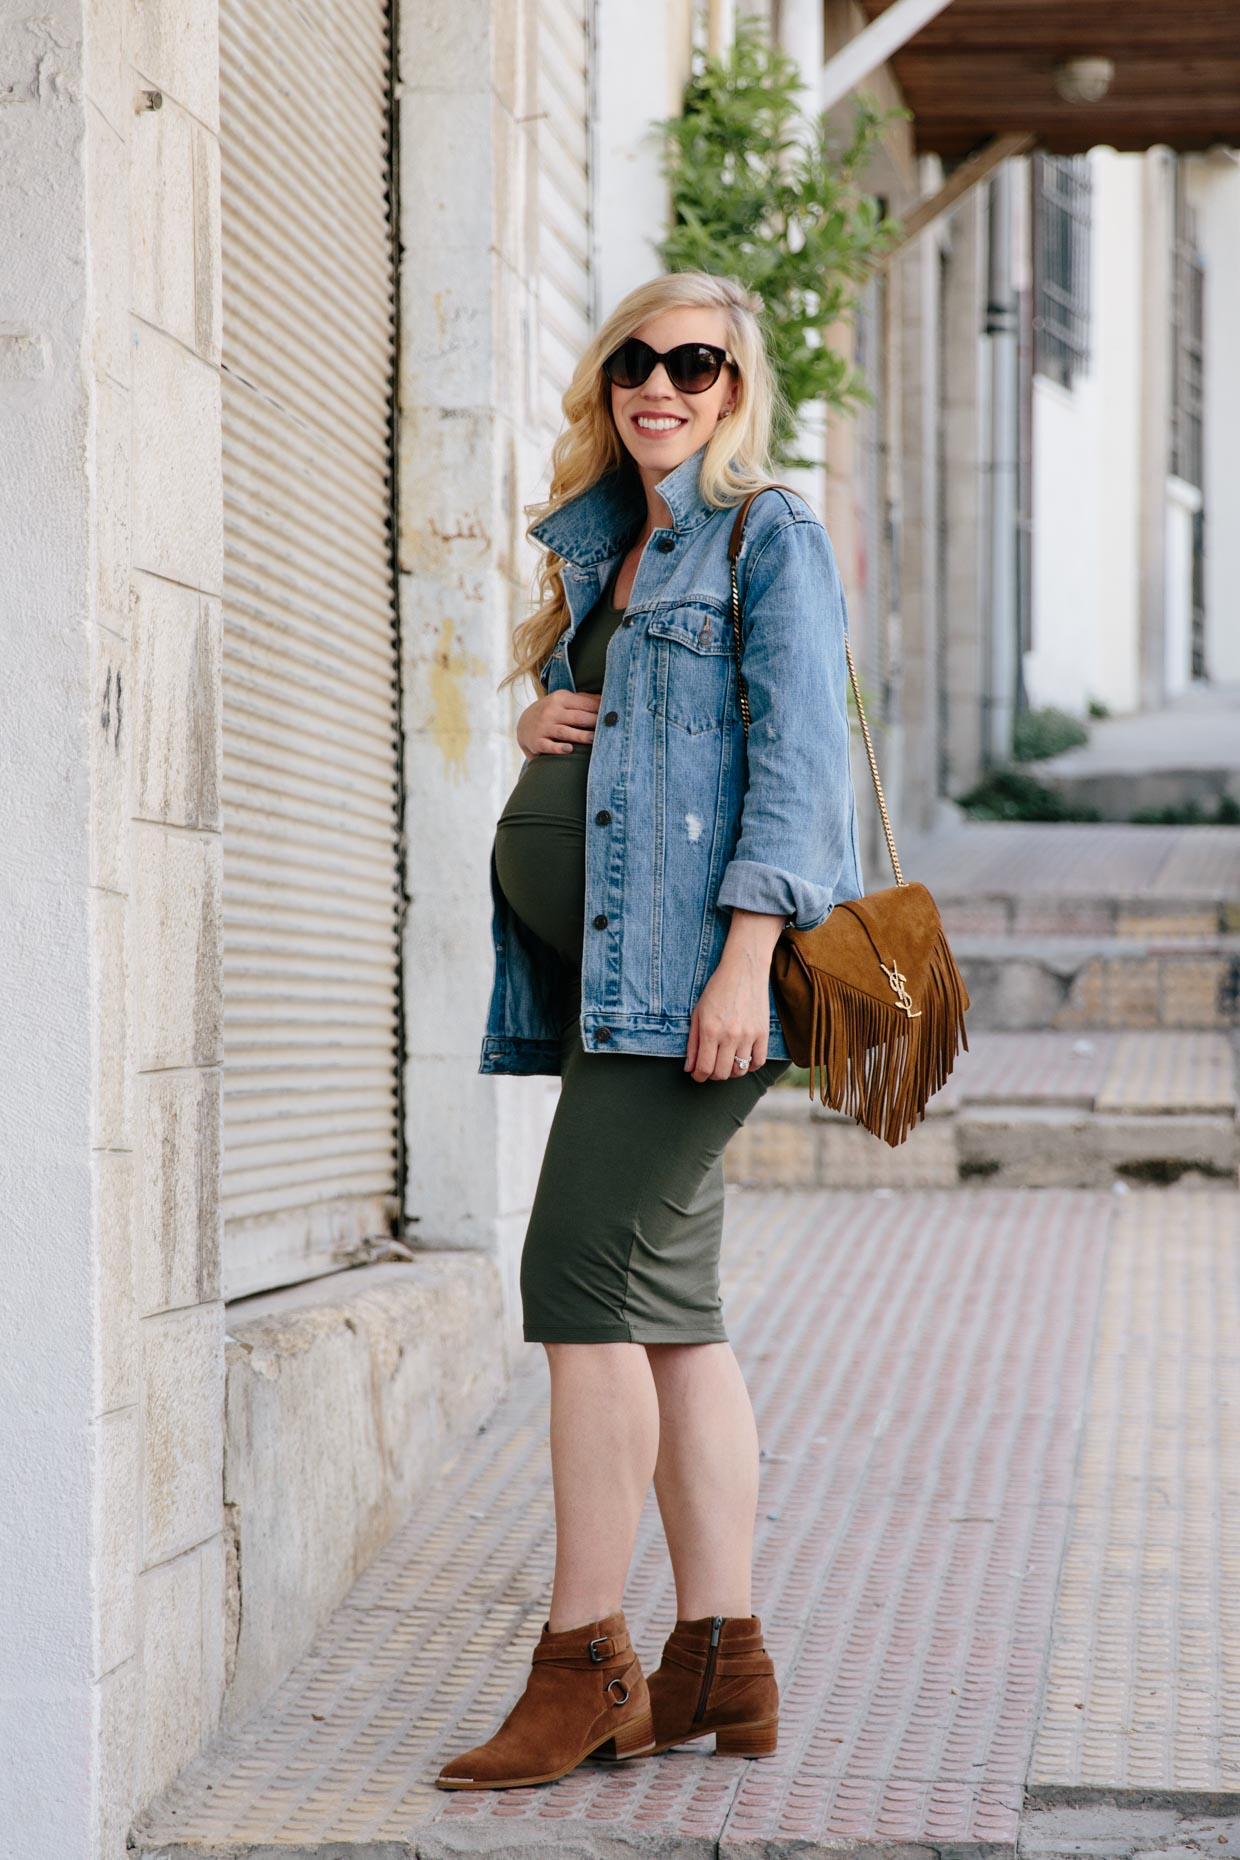 a8f4a94c56ec2 Meagan Brandon fashion blogger of Meagan's Moda wears oversized denim  jacket with olive ruched maternity dress and western suede ankle boots 34  weeks ...